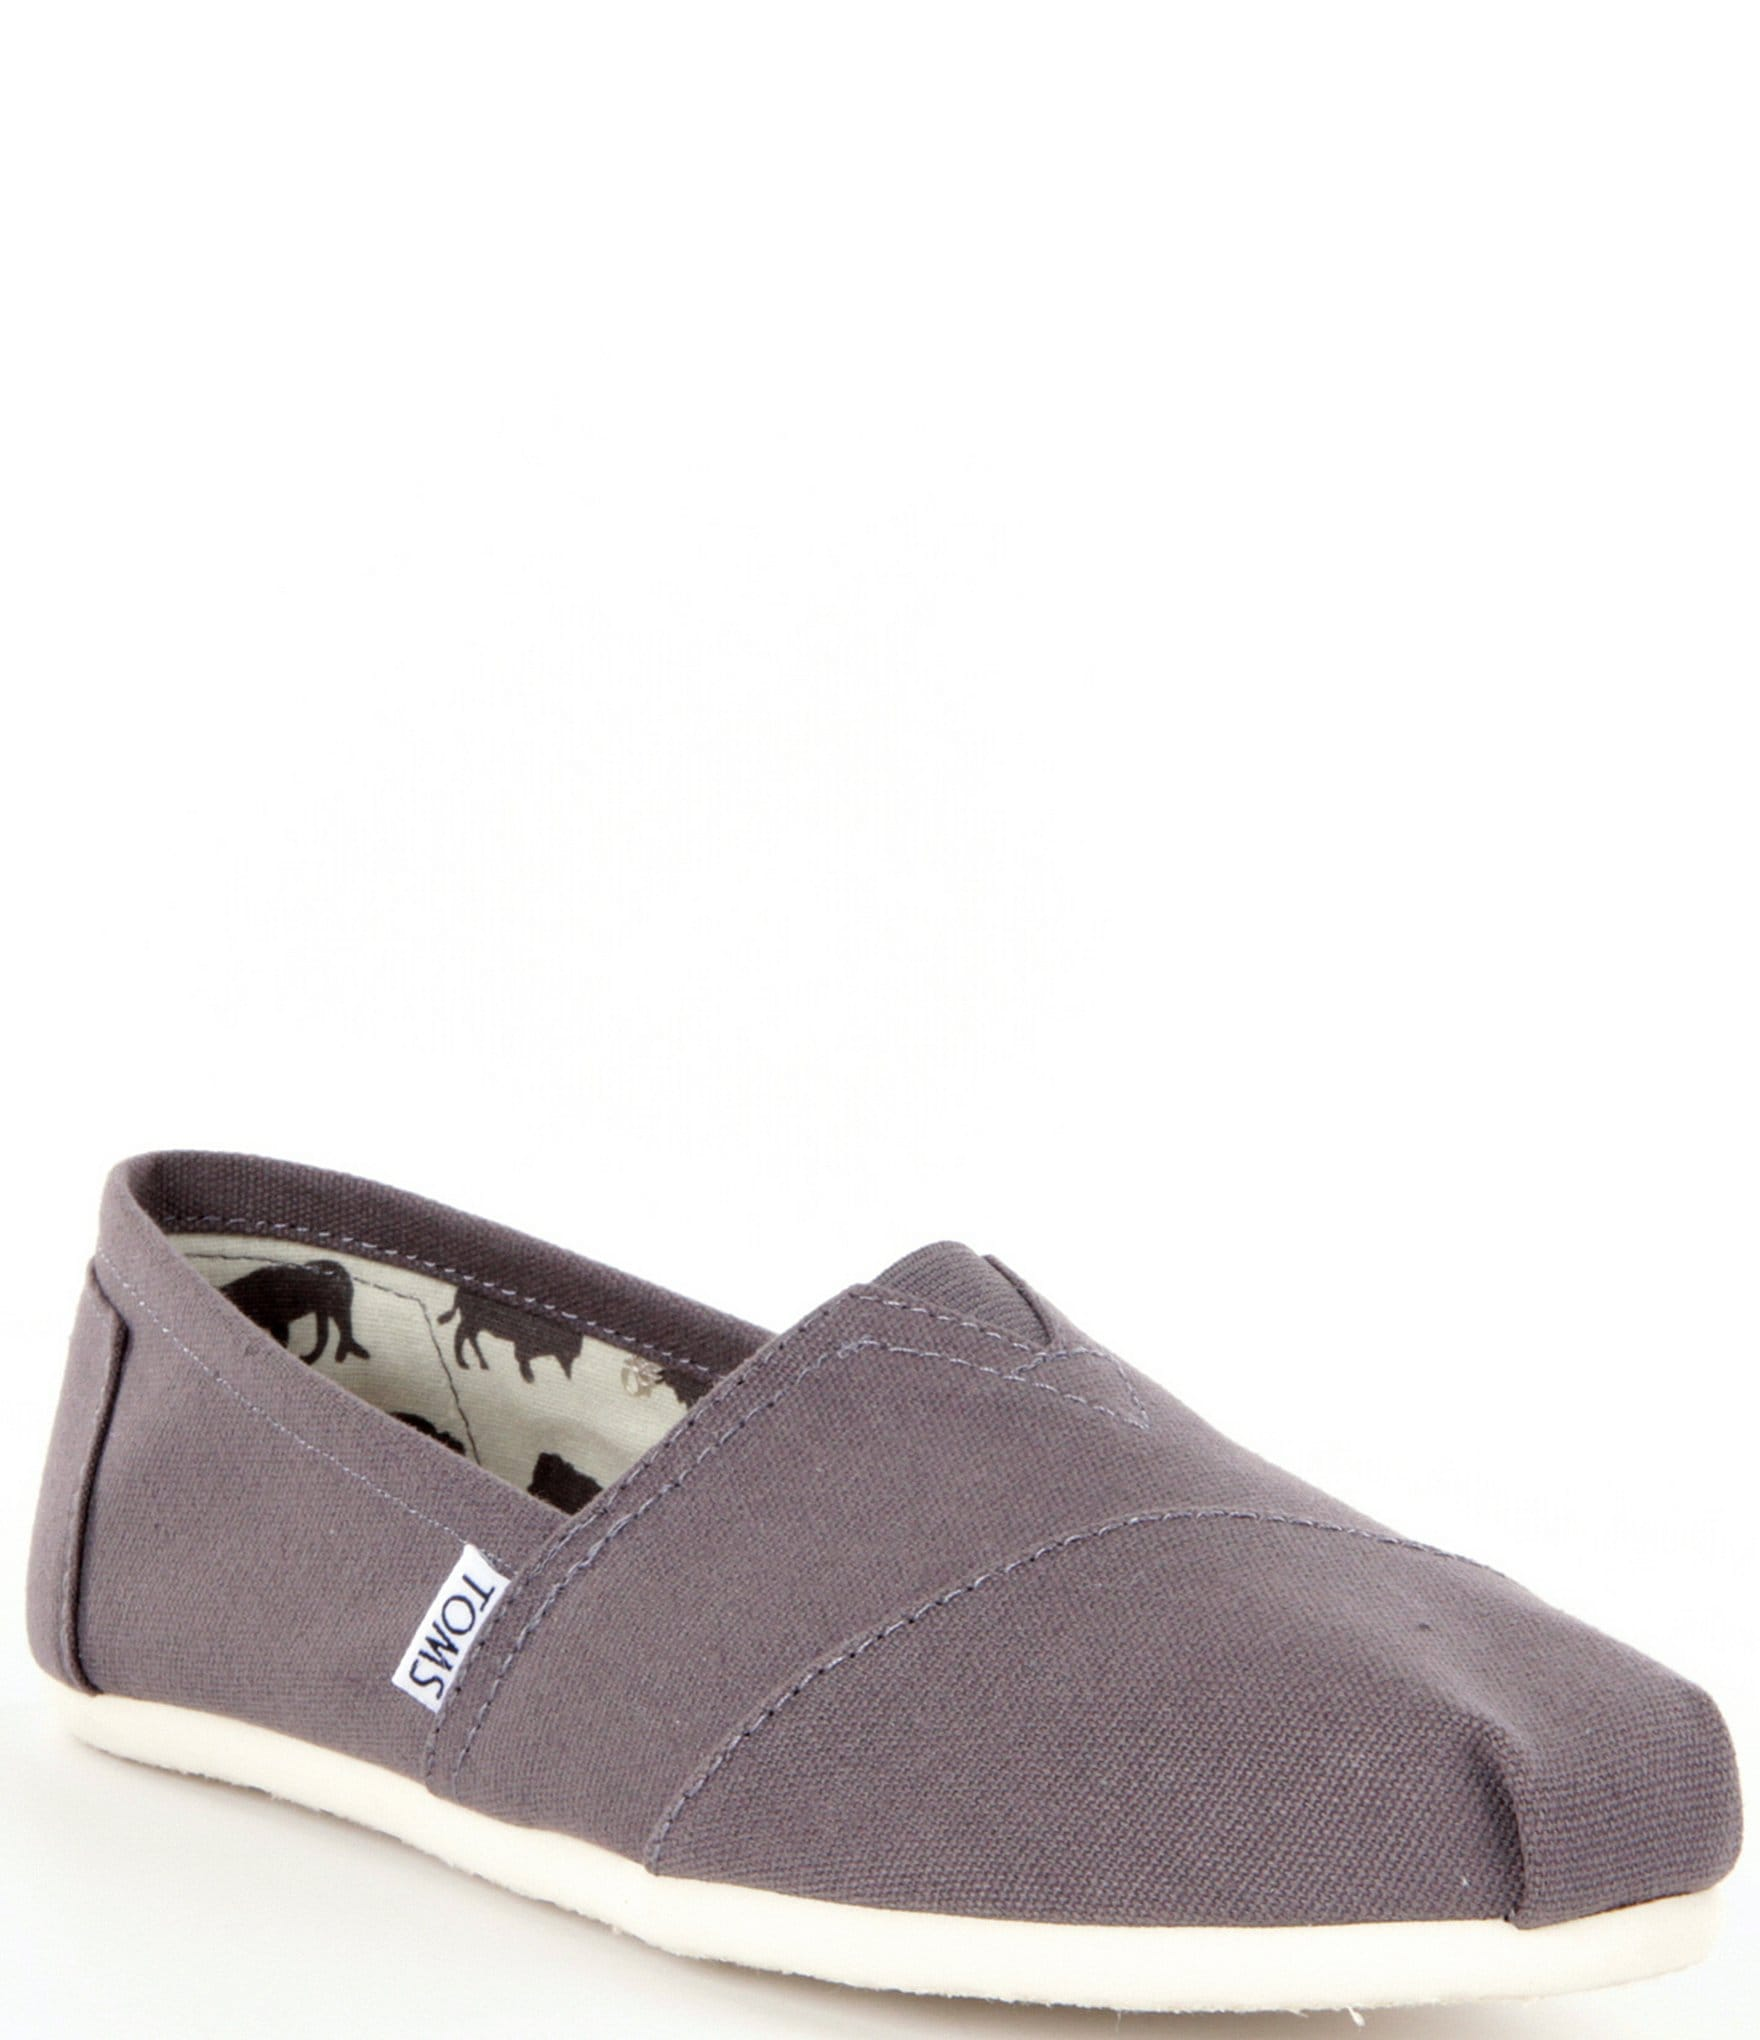 Toms Shoes Clearance Sale